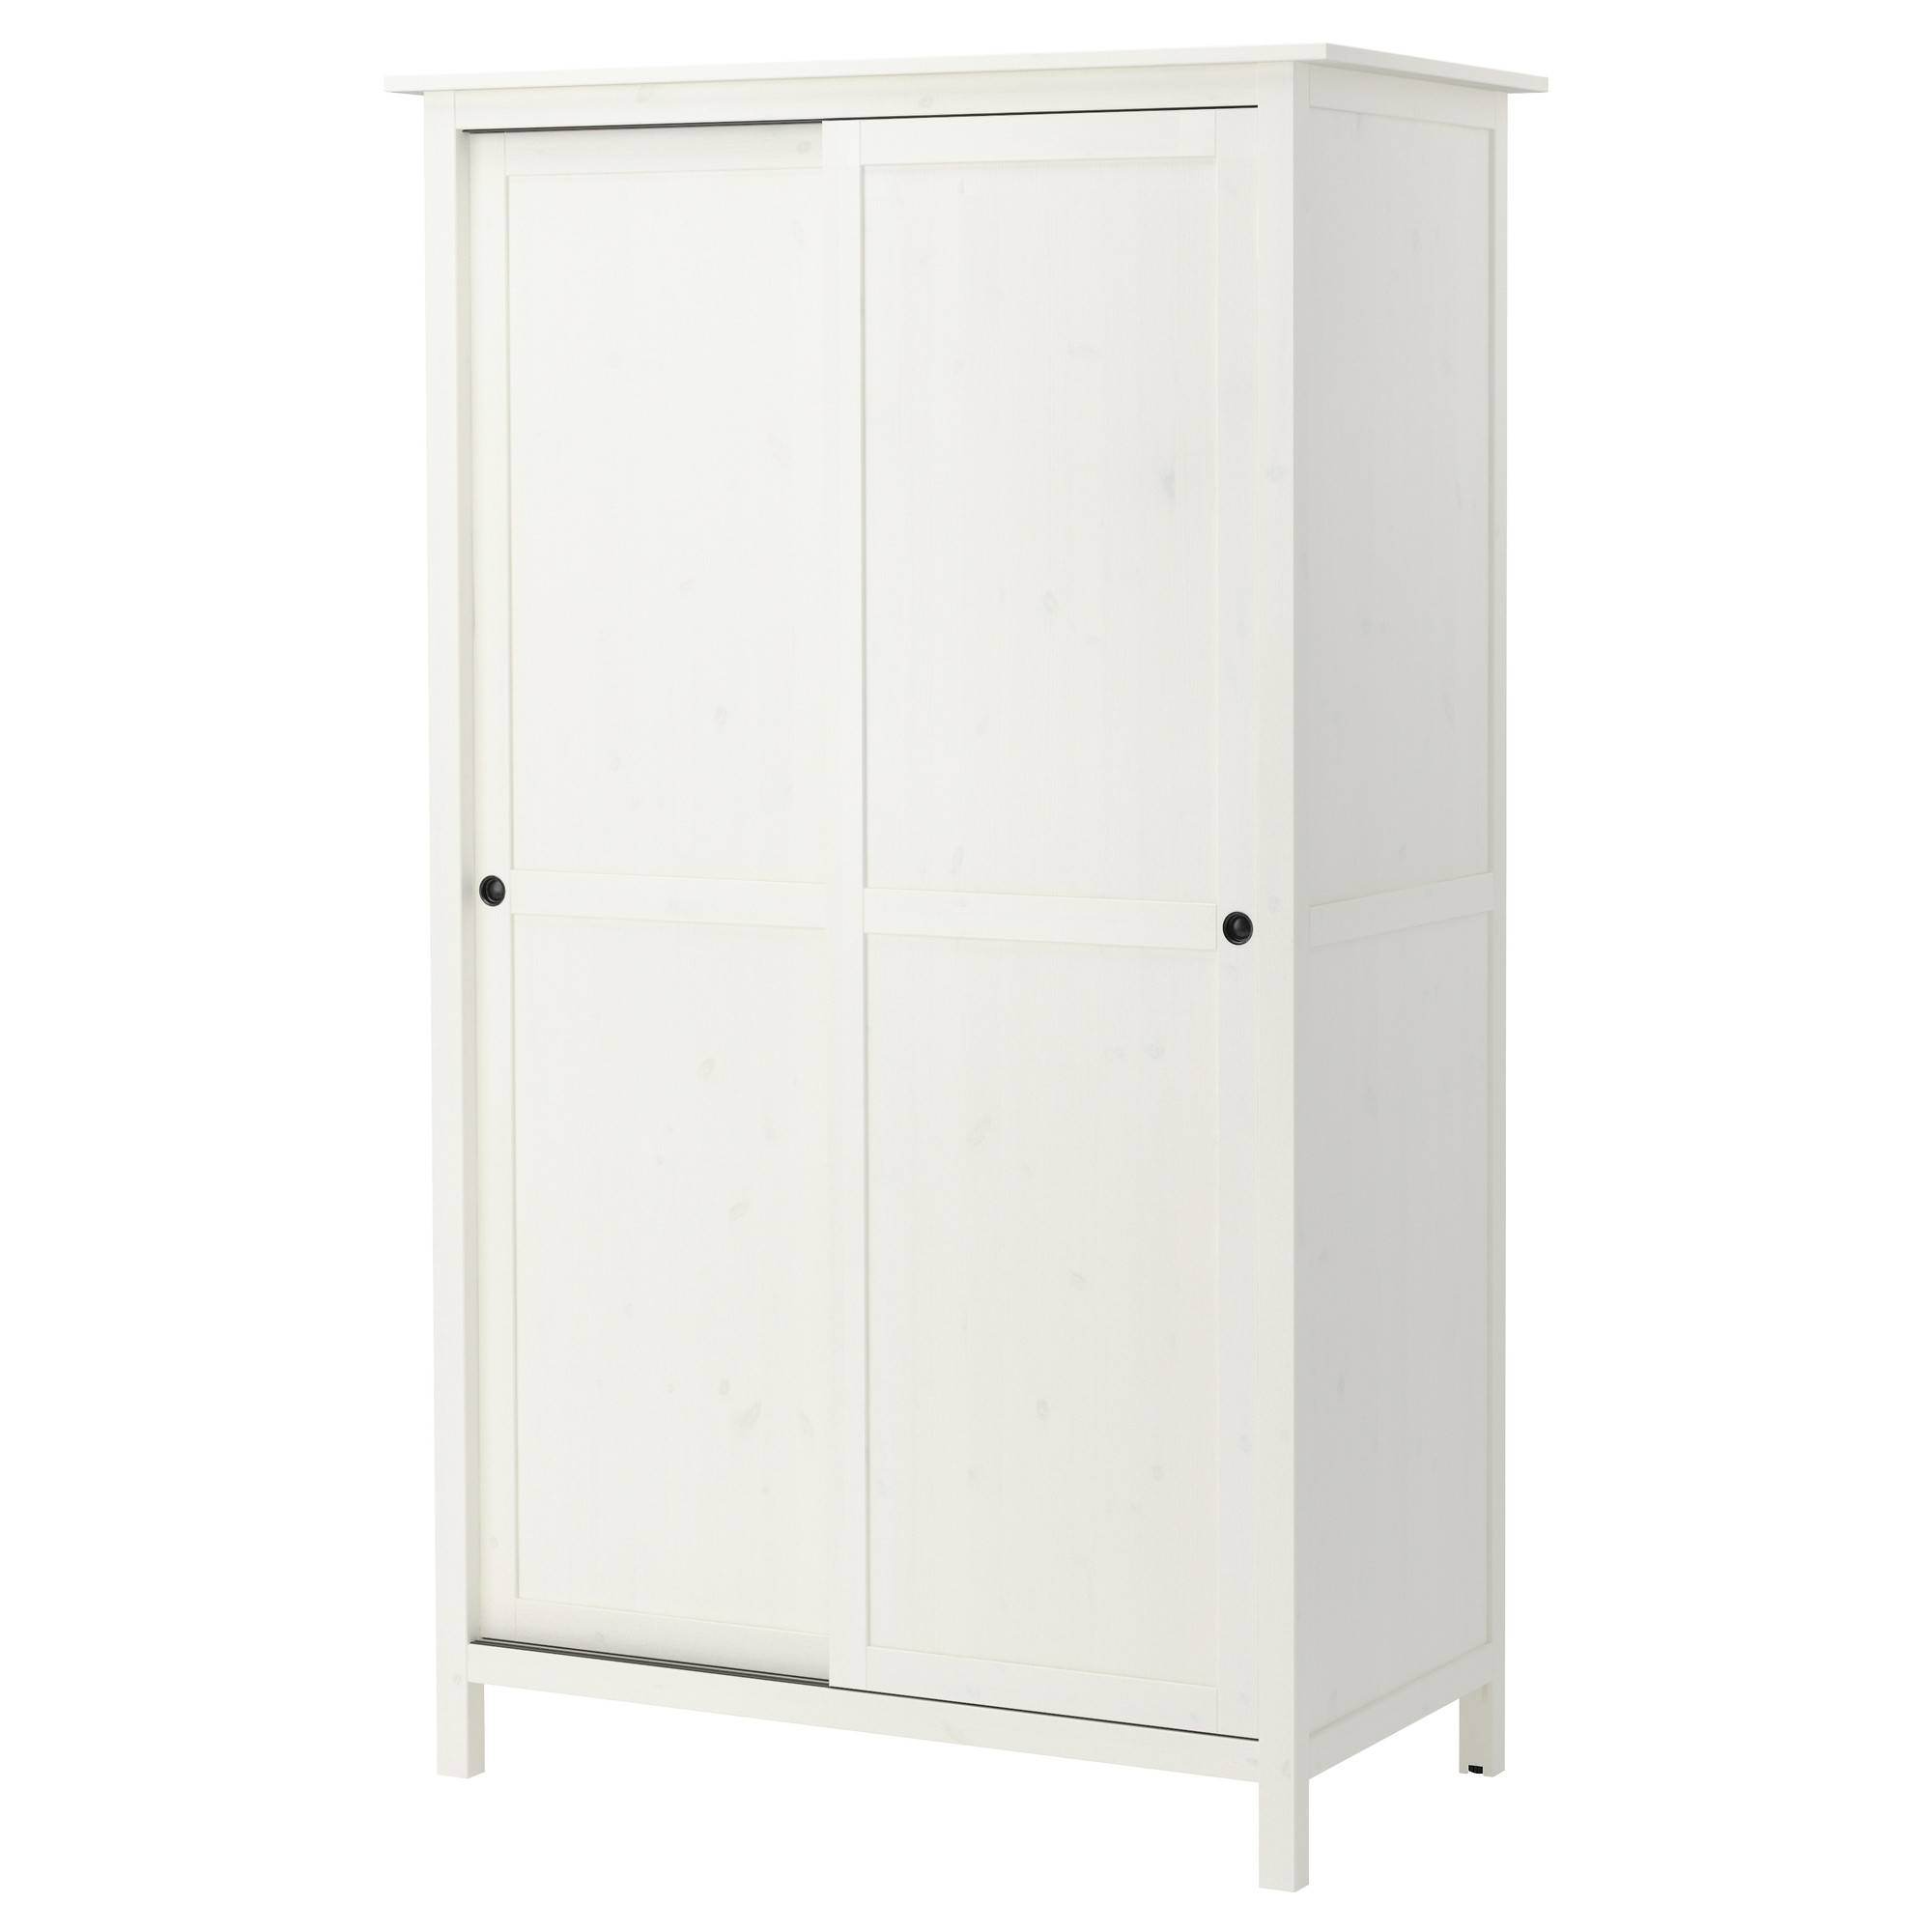 Wardrobes | Ikea Inside White Cheap Wardrobes (View 10 of 15)